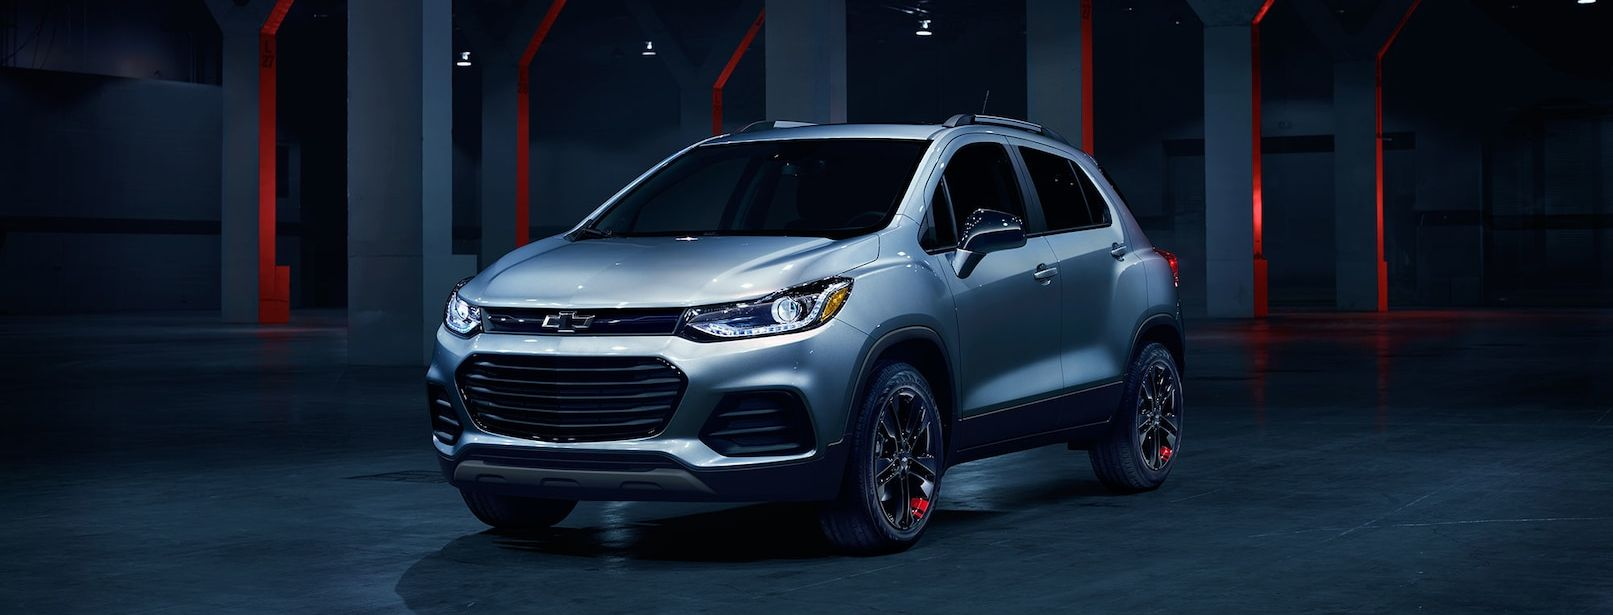 2019 Chevrolet Trax Leasing near Frankfort, IL